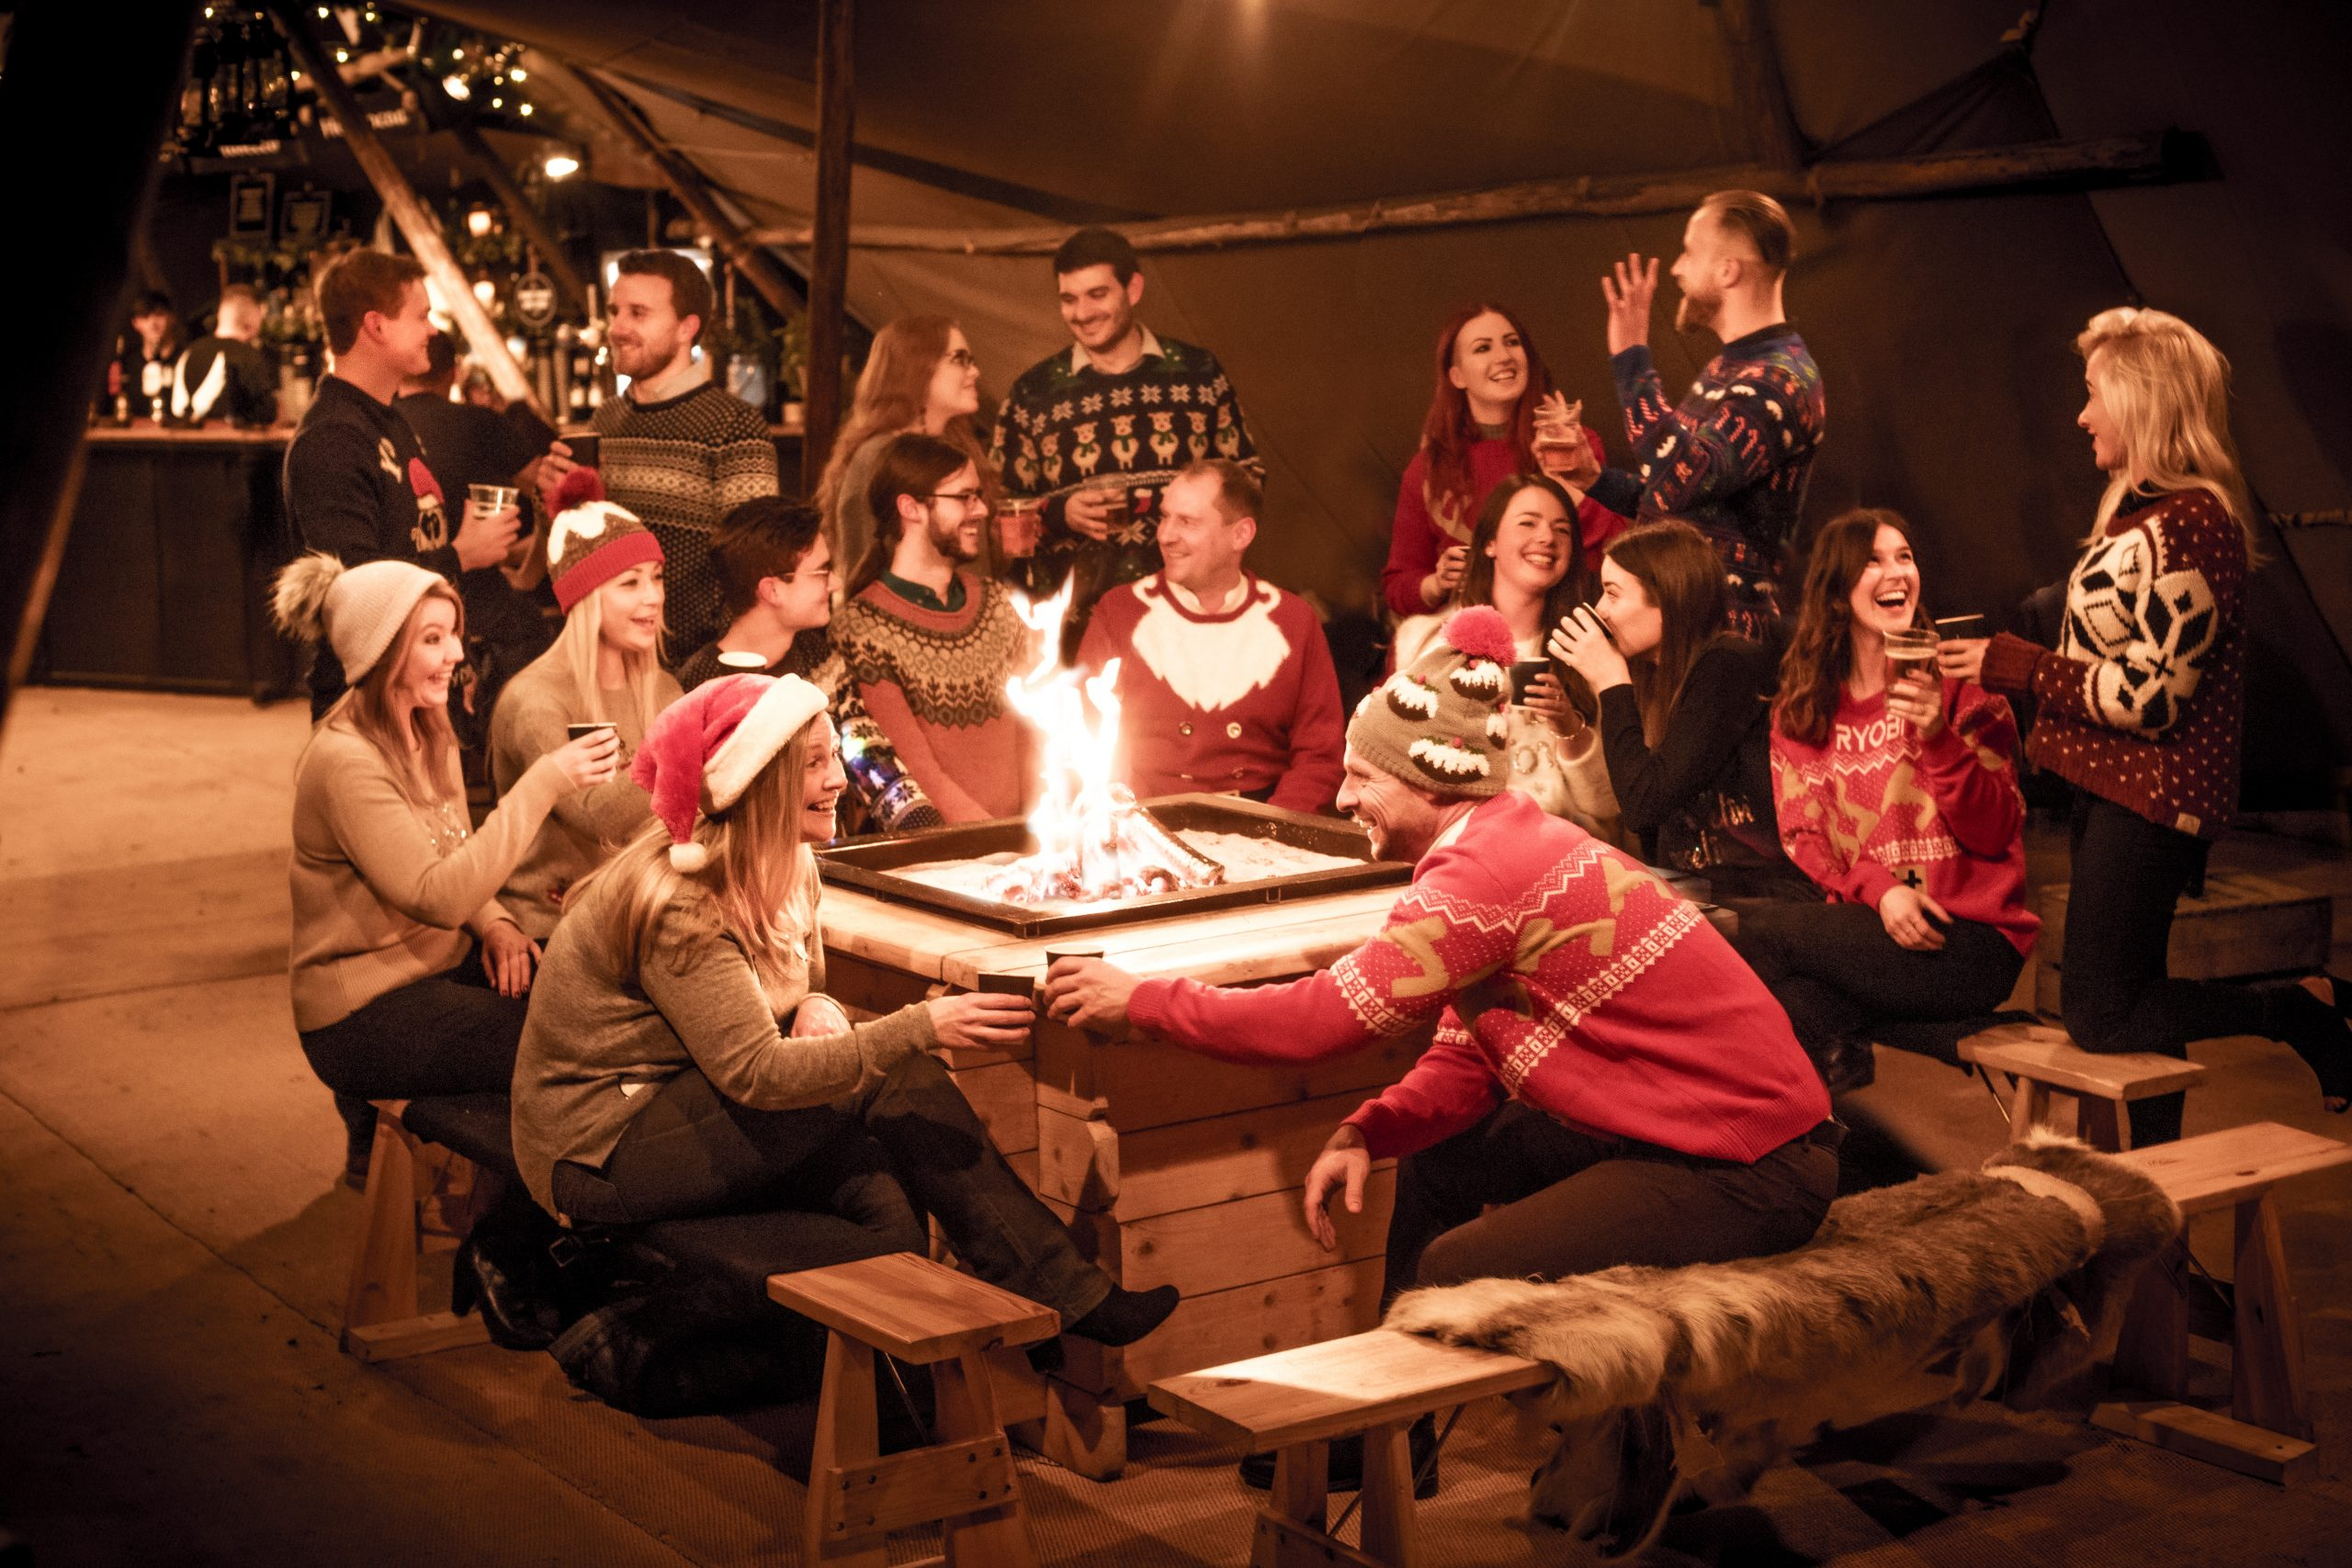 The Staff of We Are Boutique Gathered Around a Fire Wearing Christmas Jumpers